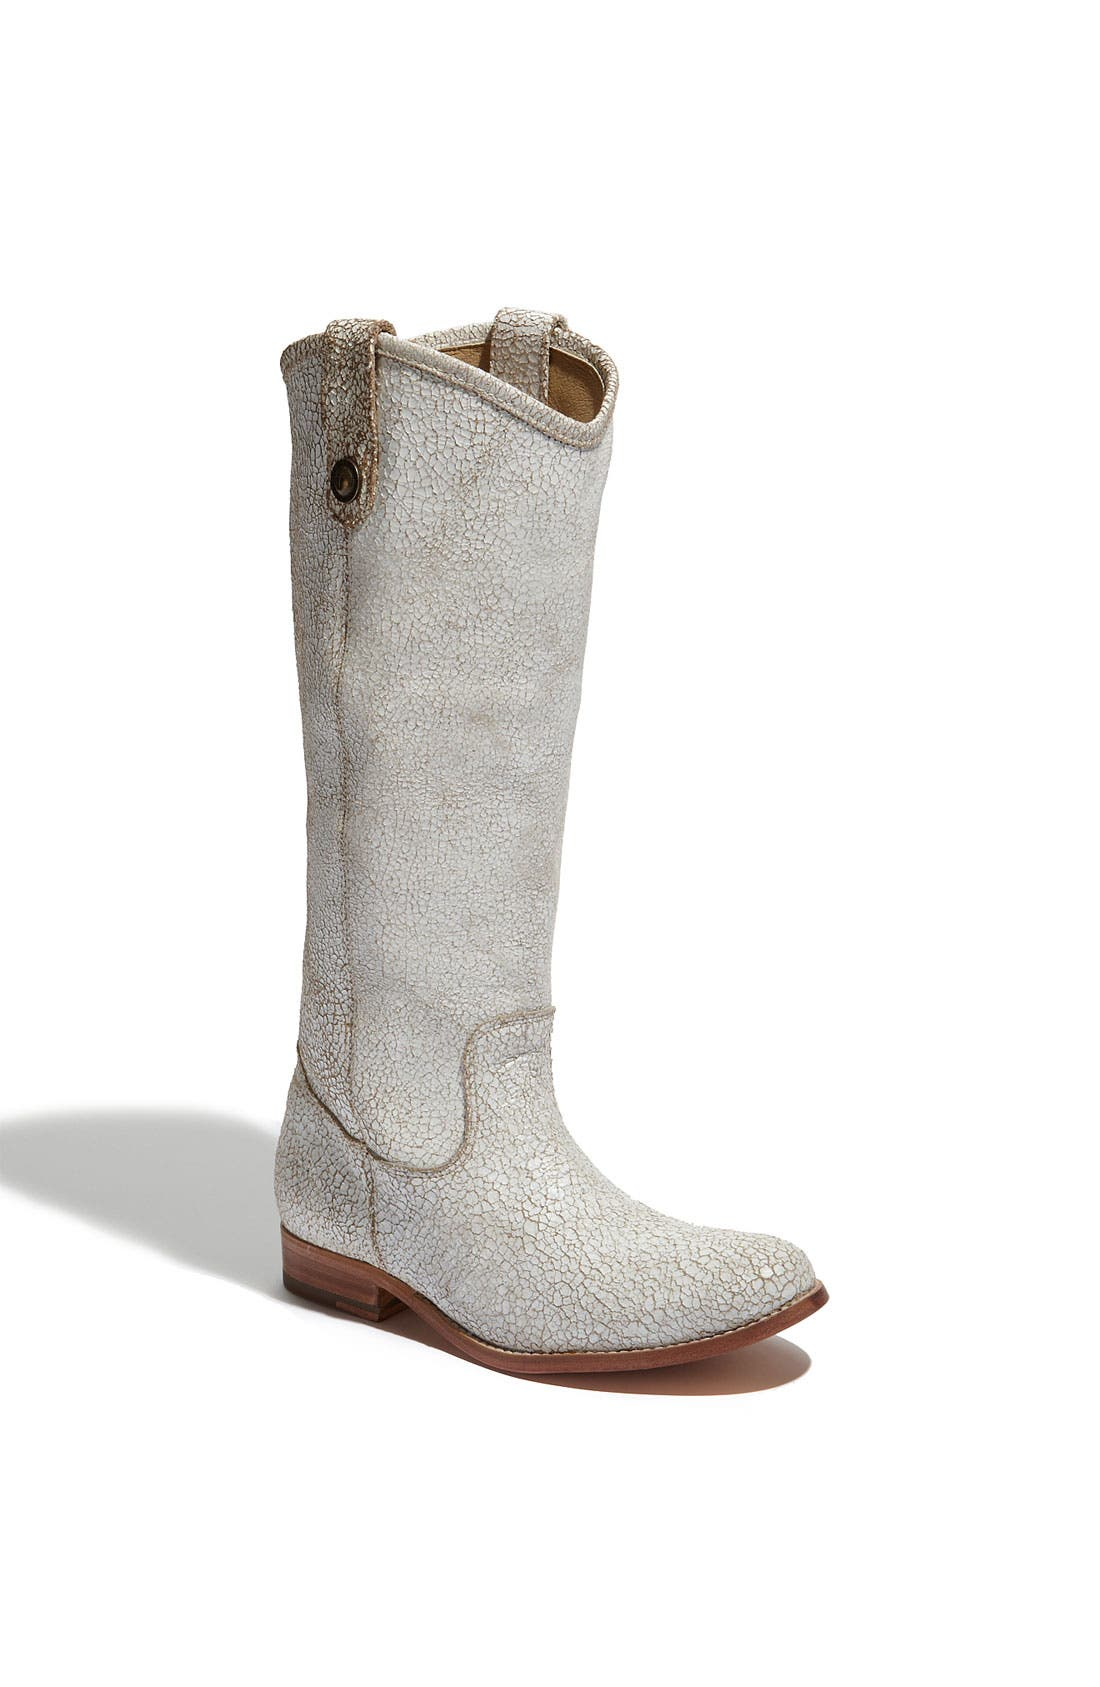 Main Image - Frye 'Melissa Button' Crackled Leather Boot